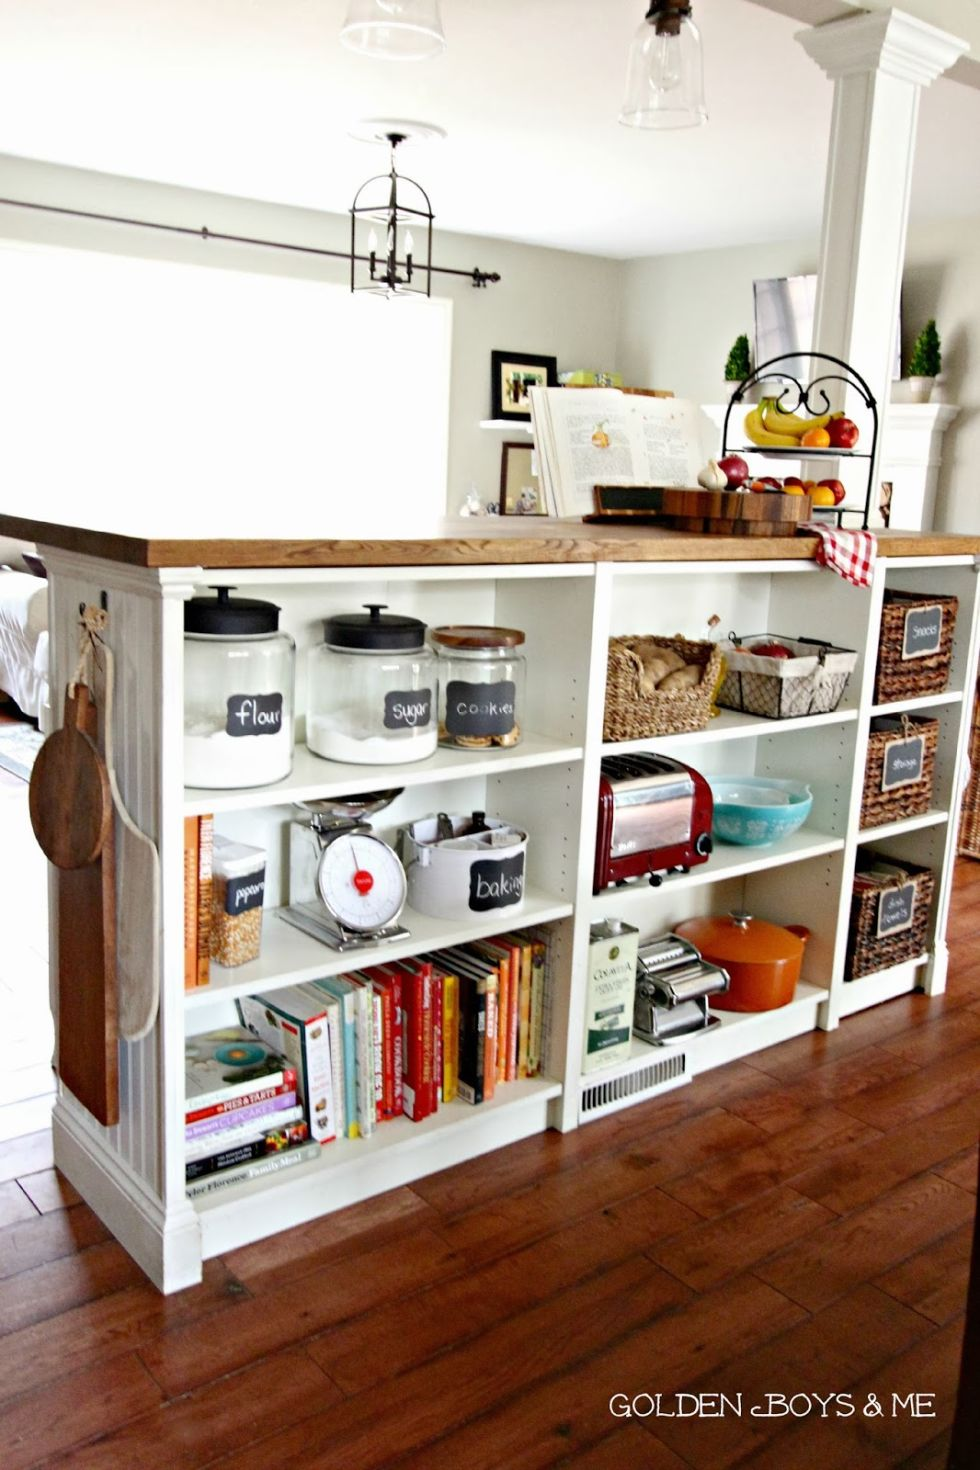 Kitchen Ideas Ikea 12 ikea kitchen ideas - organize your kitchen with ikea hacks